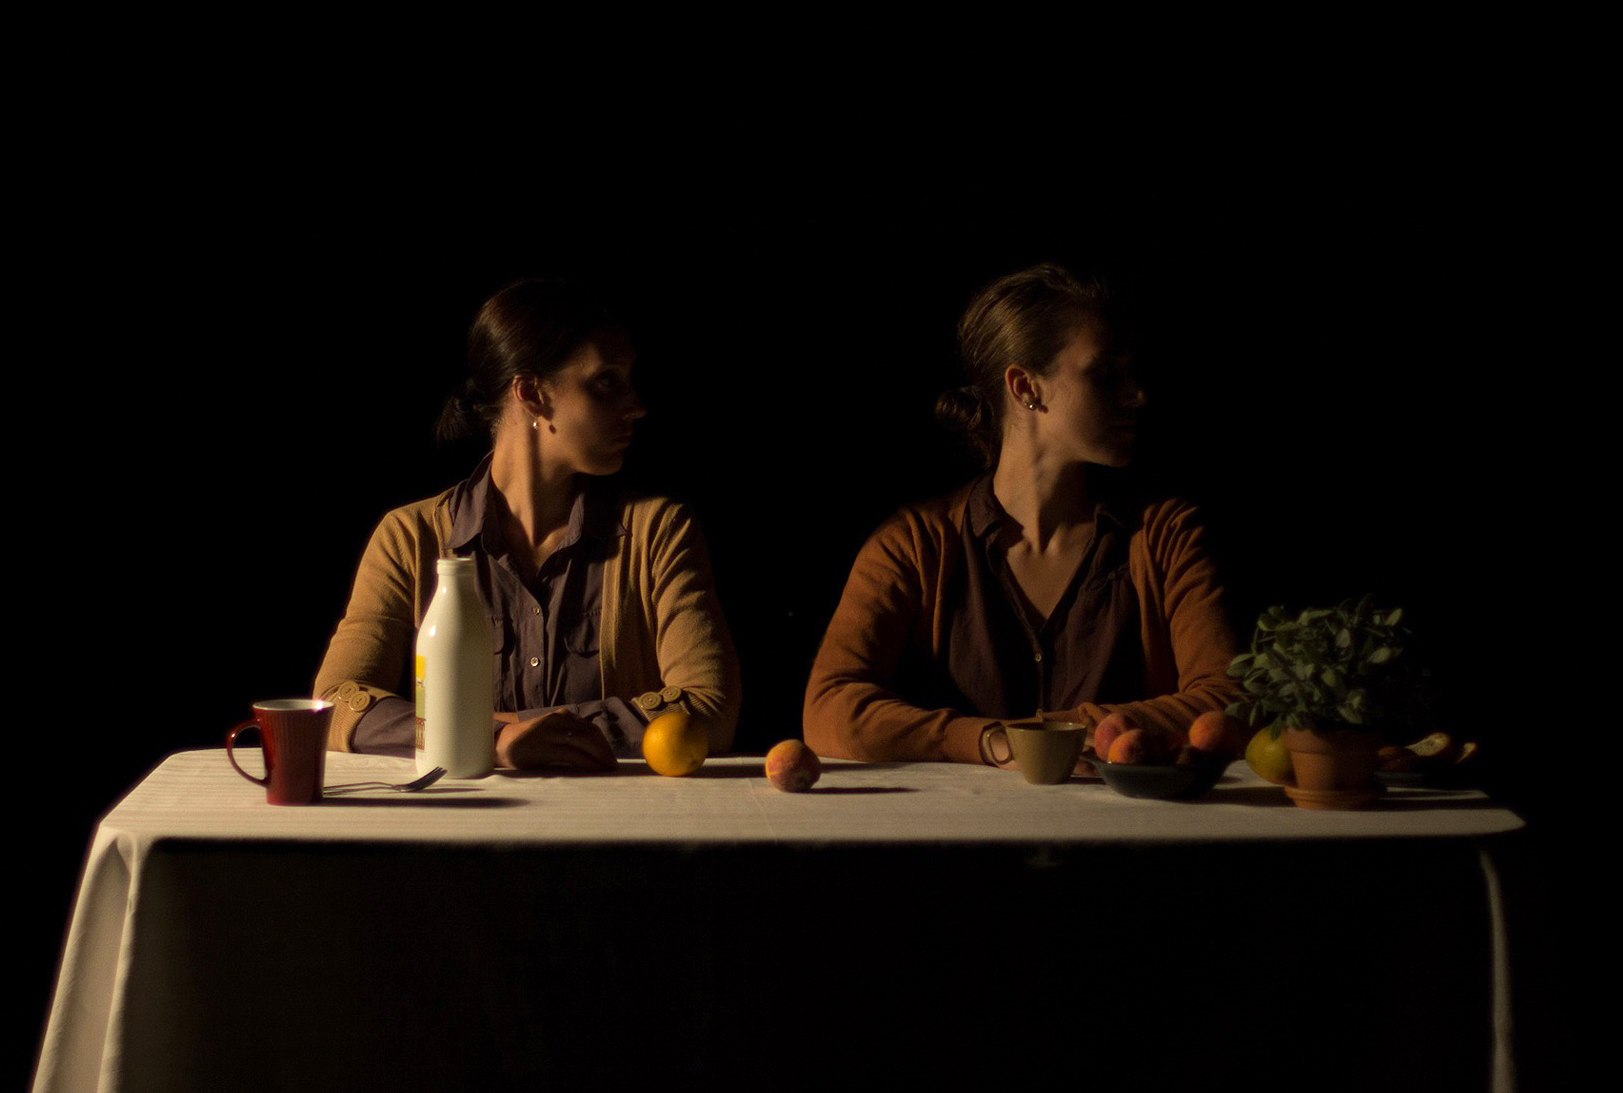 Katia-Marie Germain, Marie-Gabrielle Ménard in Habiter. Photo by Olivier Desjardins.